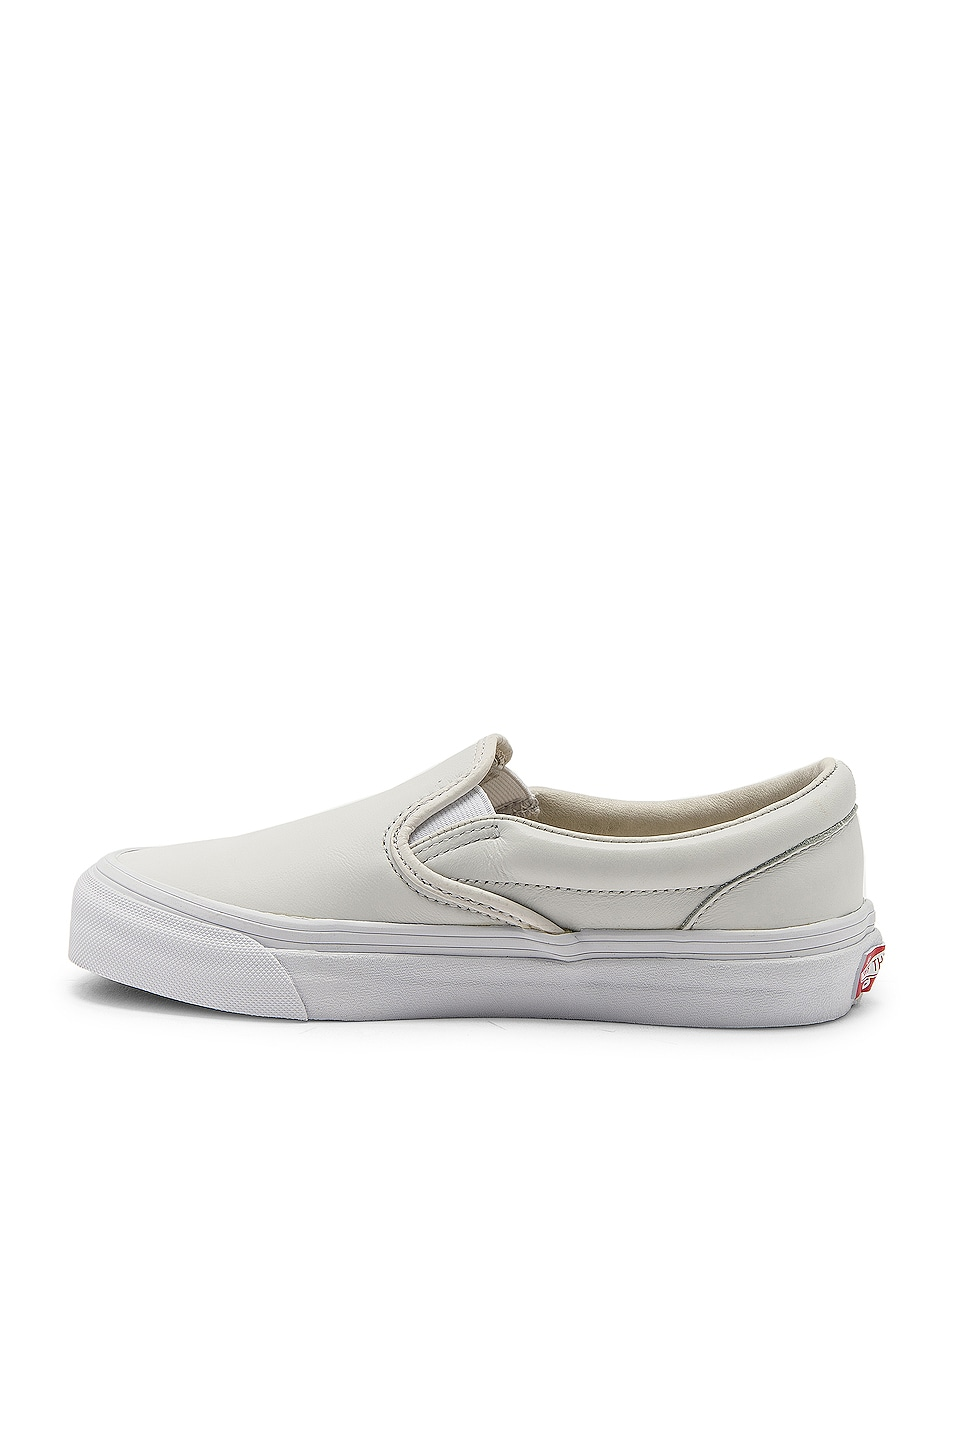 Image 5 of Vans Vault OG Classic Slip-On LX in White